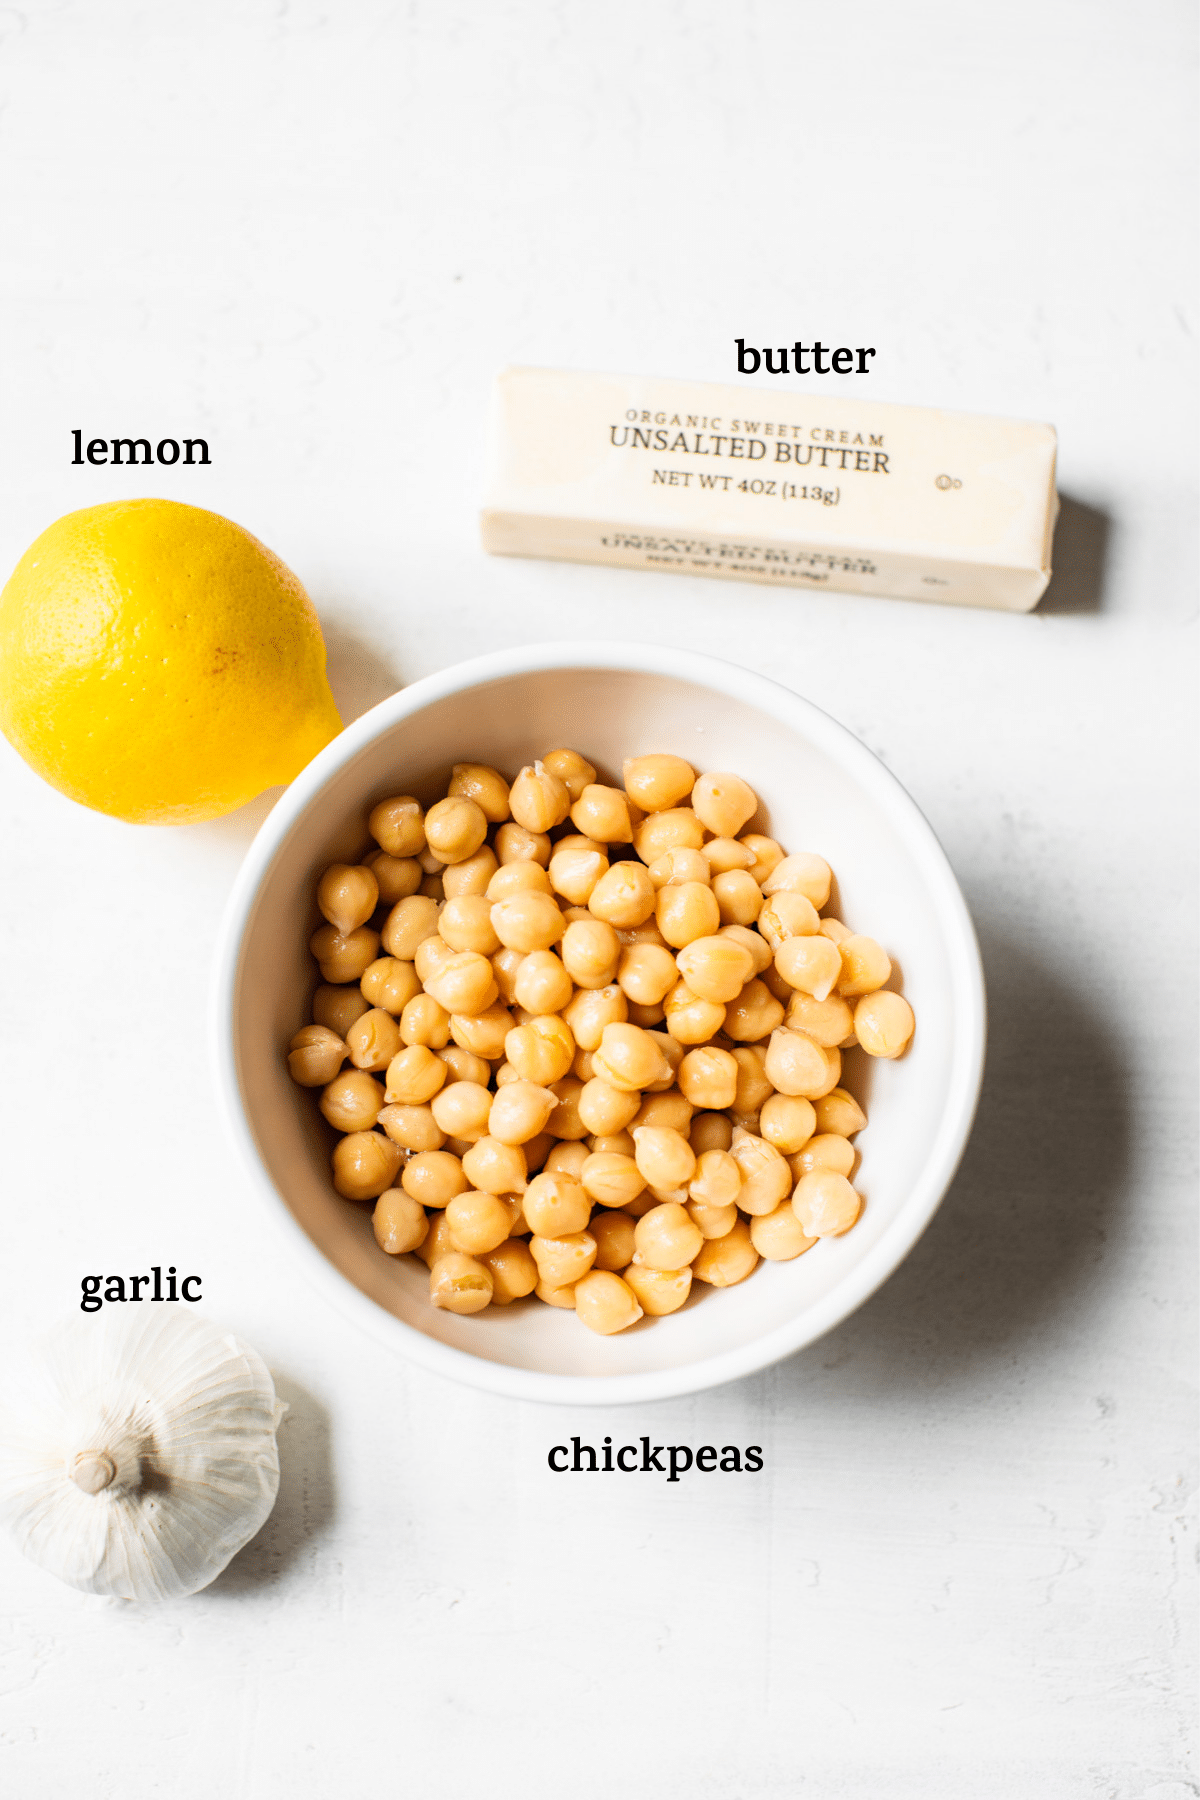 hummus ingredients with text overlay